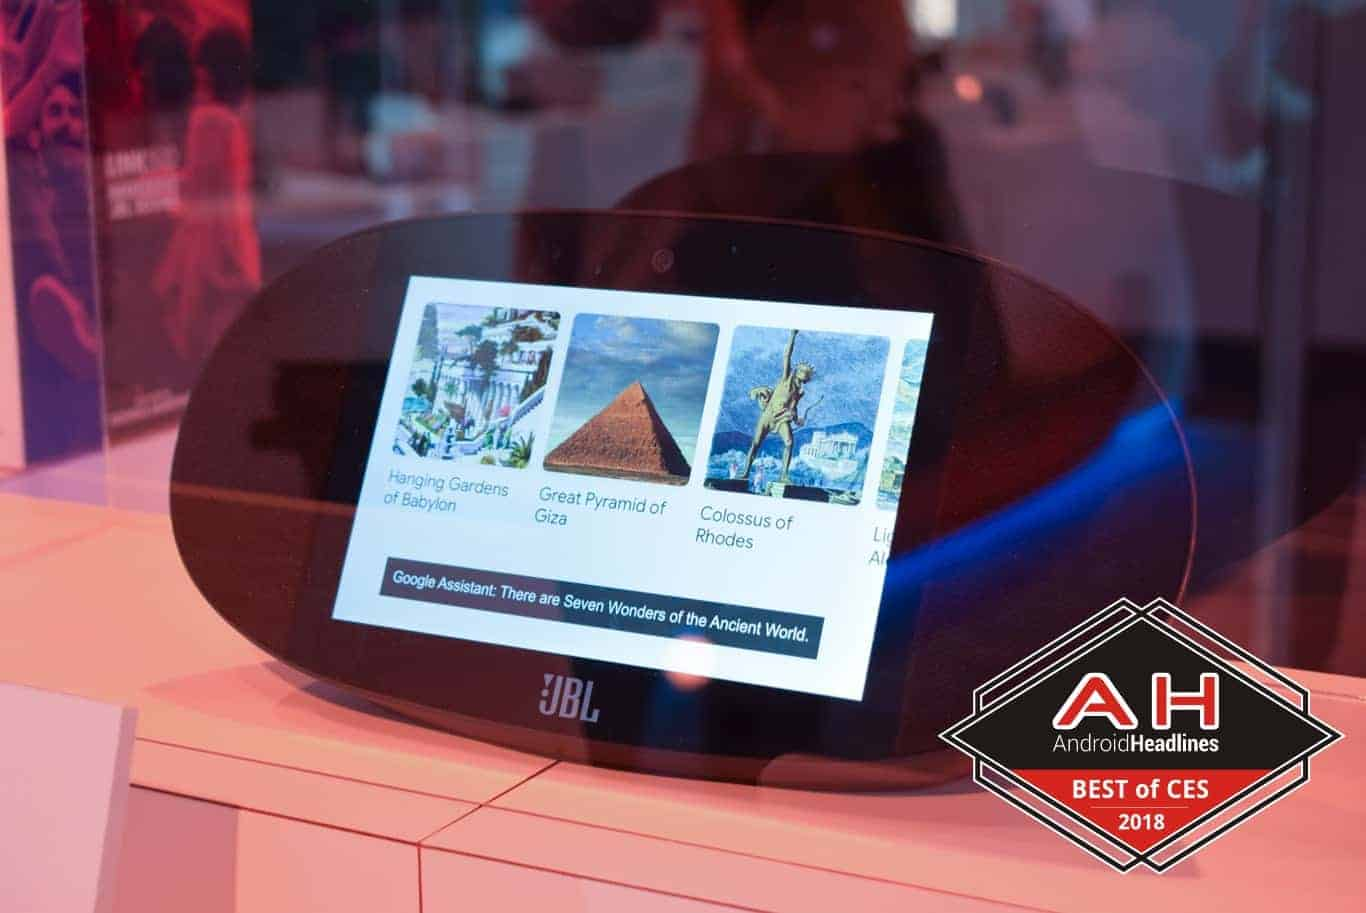 JBL Link View best of CES 2018 badge 1